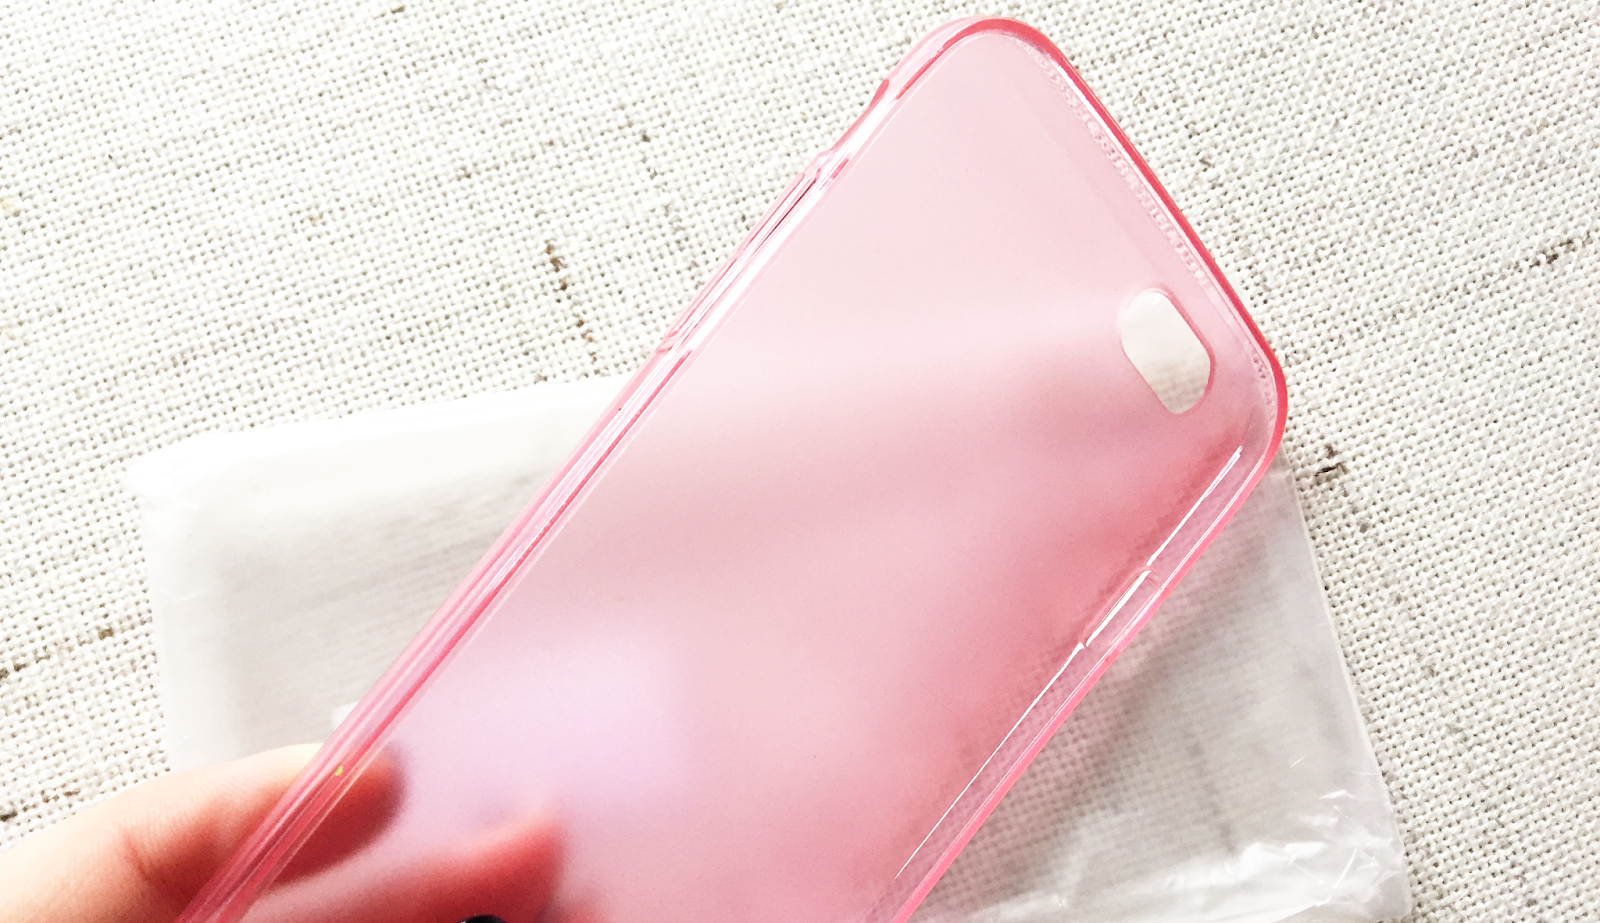 http://www.cndirect.com/baseus-soft-tpu-ultrathin-transparent-back-case-cover-skin-for-iphone-6-4-7.html?utm_source=blog&utm_medium=banner&utm_campaign=lendy319